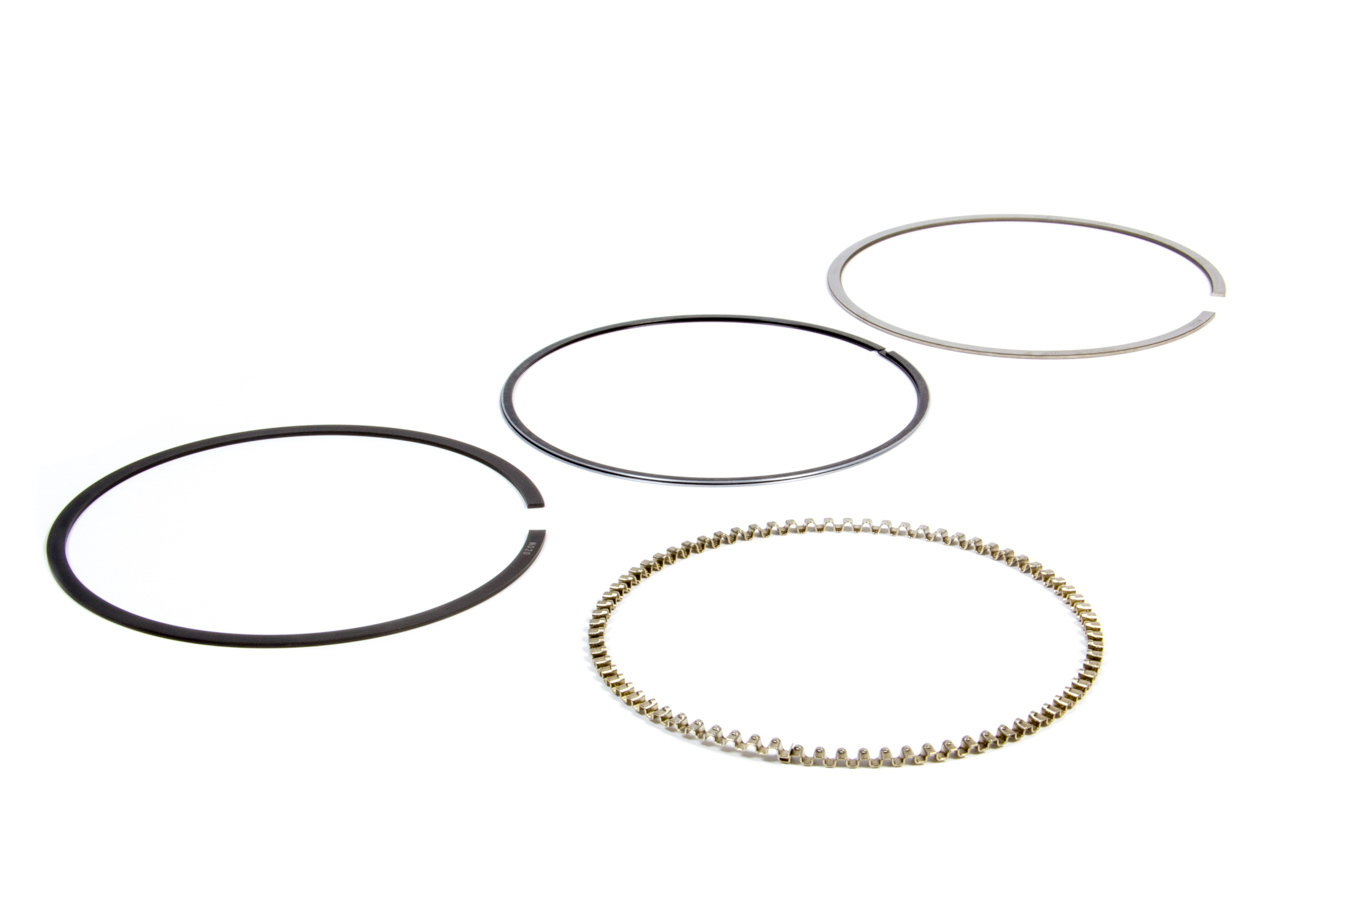 Wiseco 4072GFX Piston Rings, 4.072 in Bore, File Fit, 1.2 x 1.2 x 3.0 mm Thick, Standard Tension, Gas Nitride, 1 Cylinder, Kit